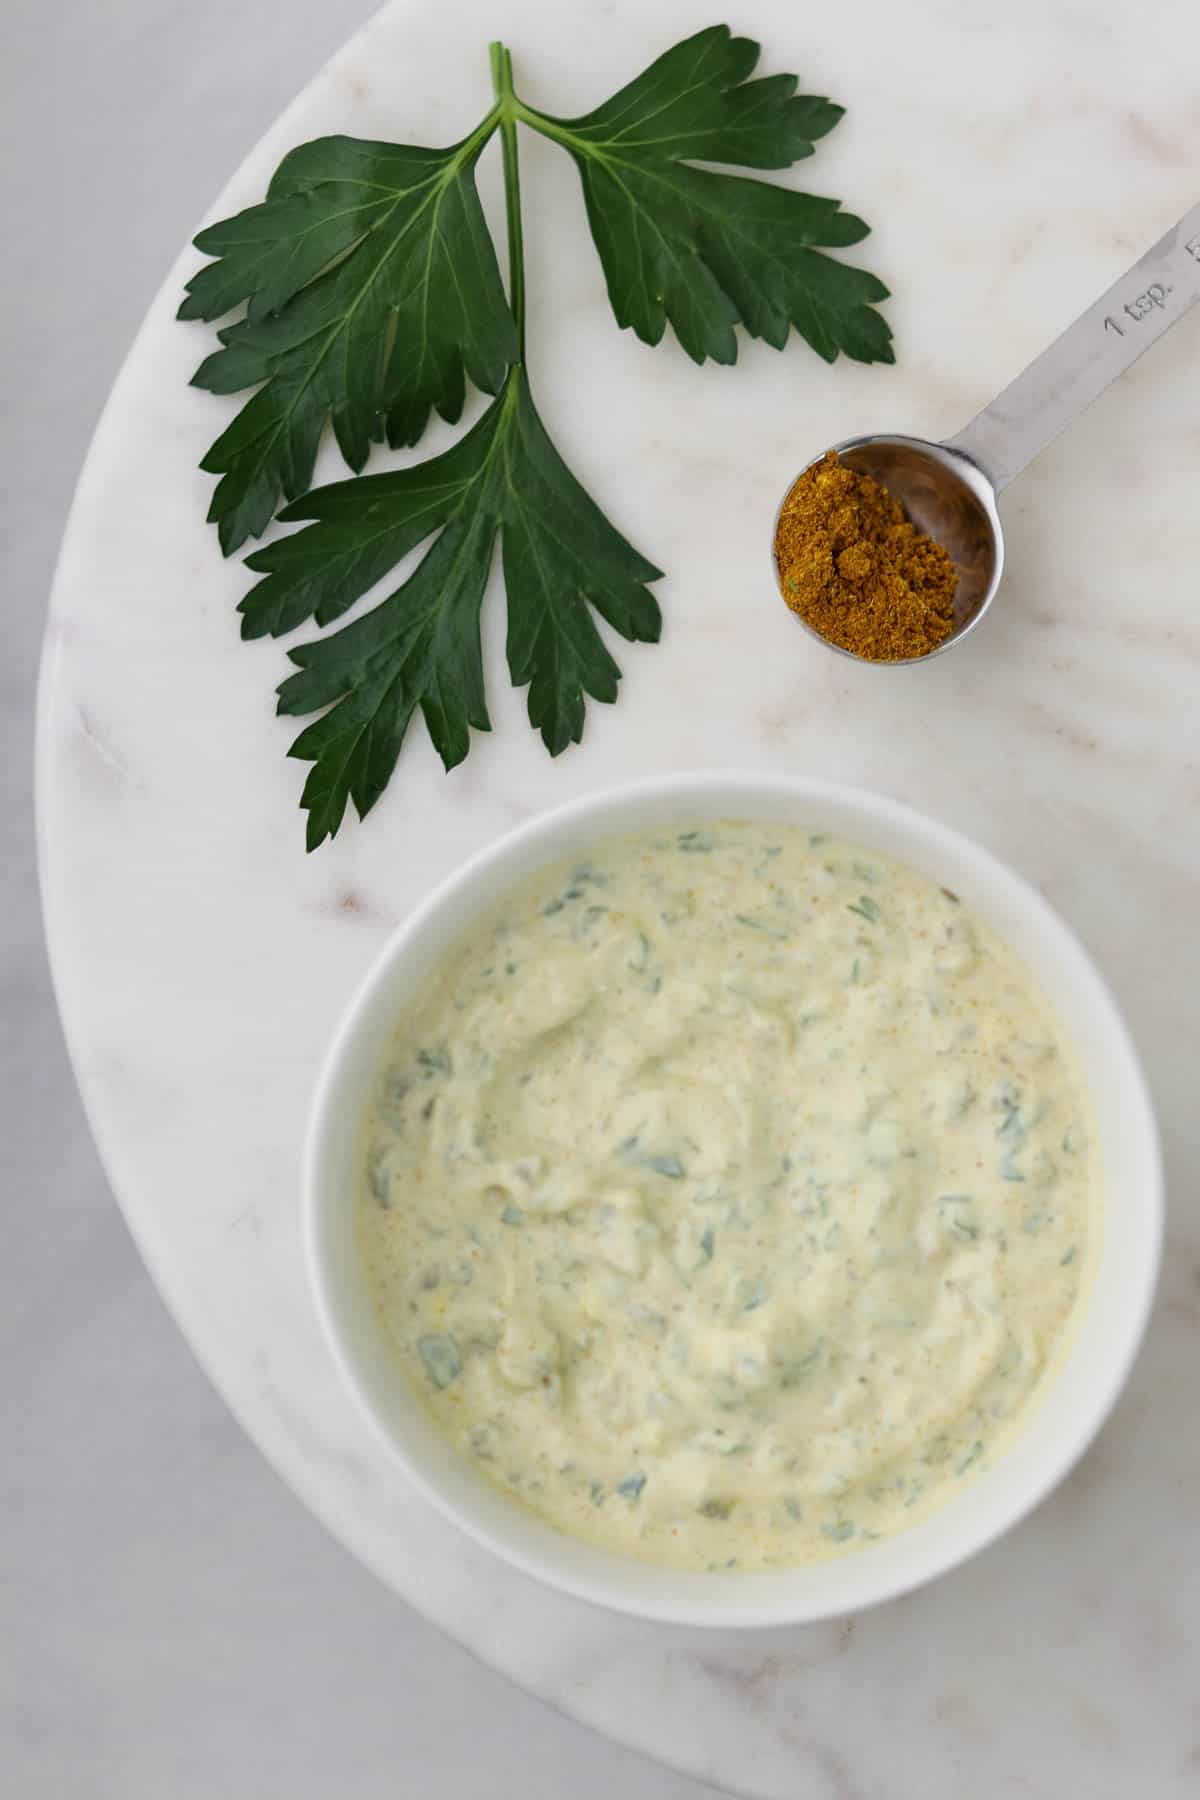 Danish remoulade in a bowl next to curry powder and parsley.